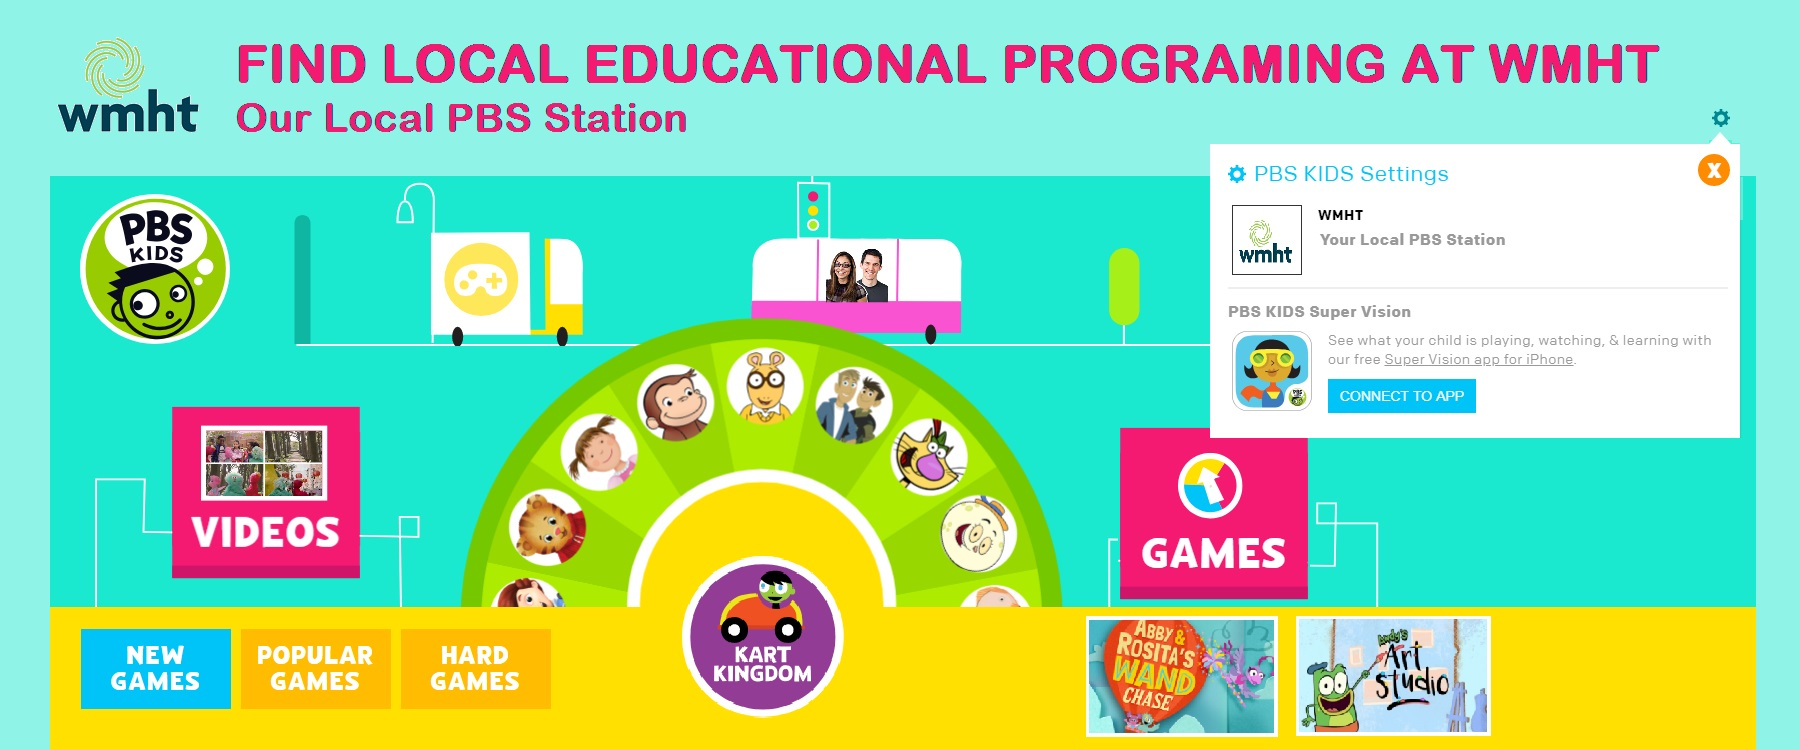 Find Local Educational Programs